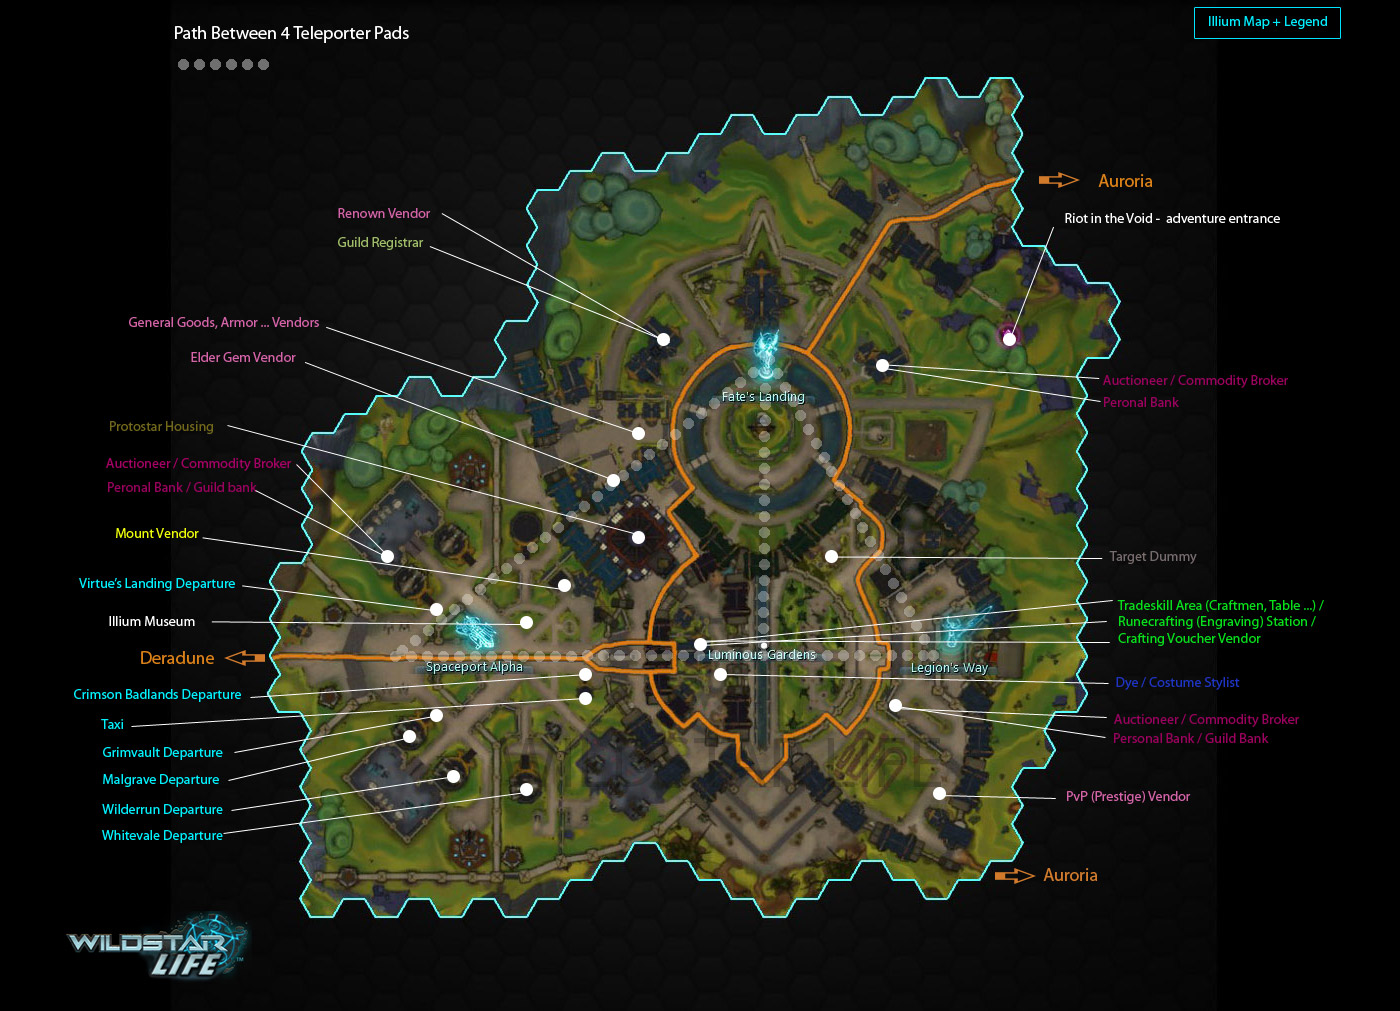 Illium map with points of interest